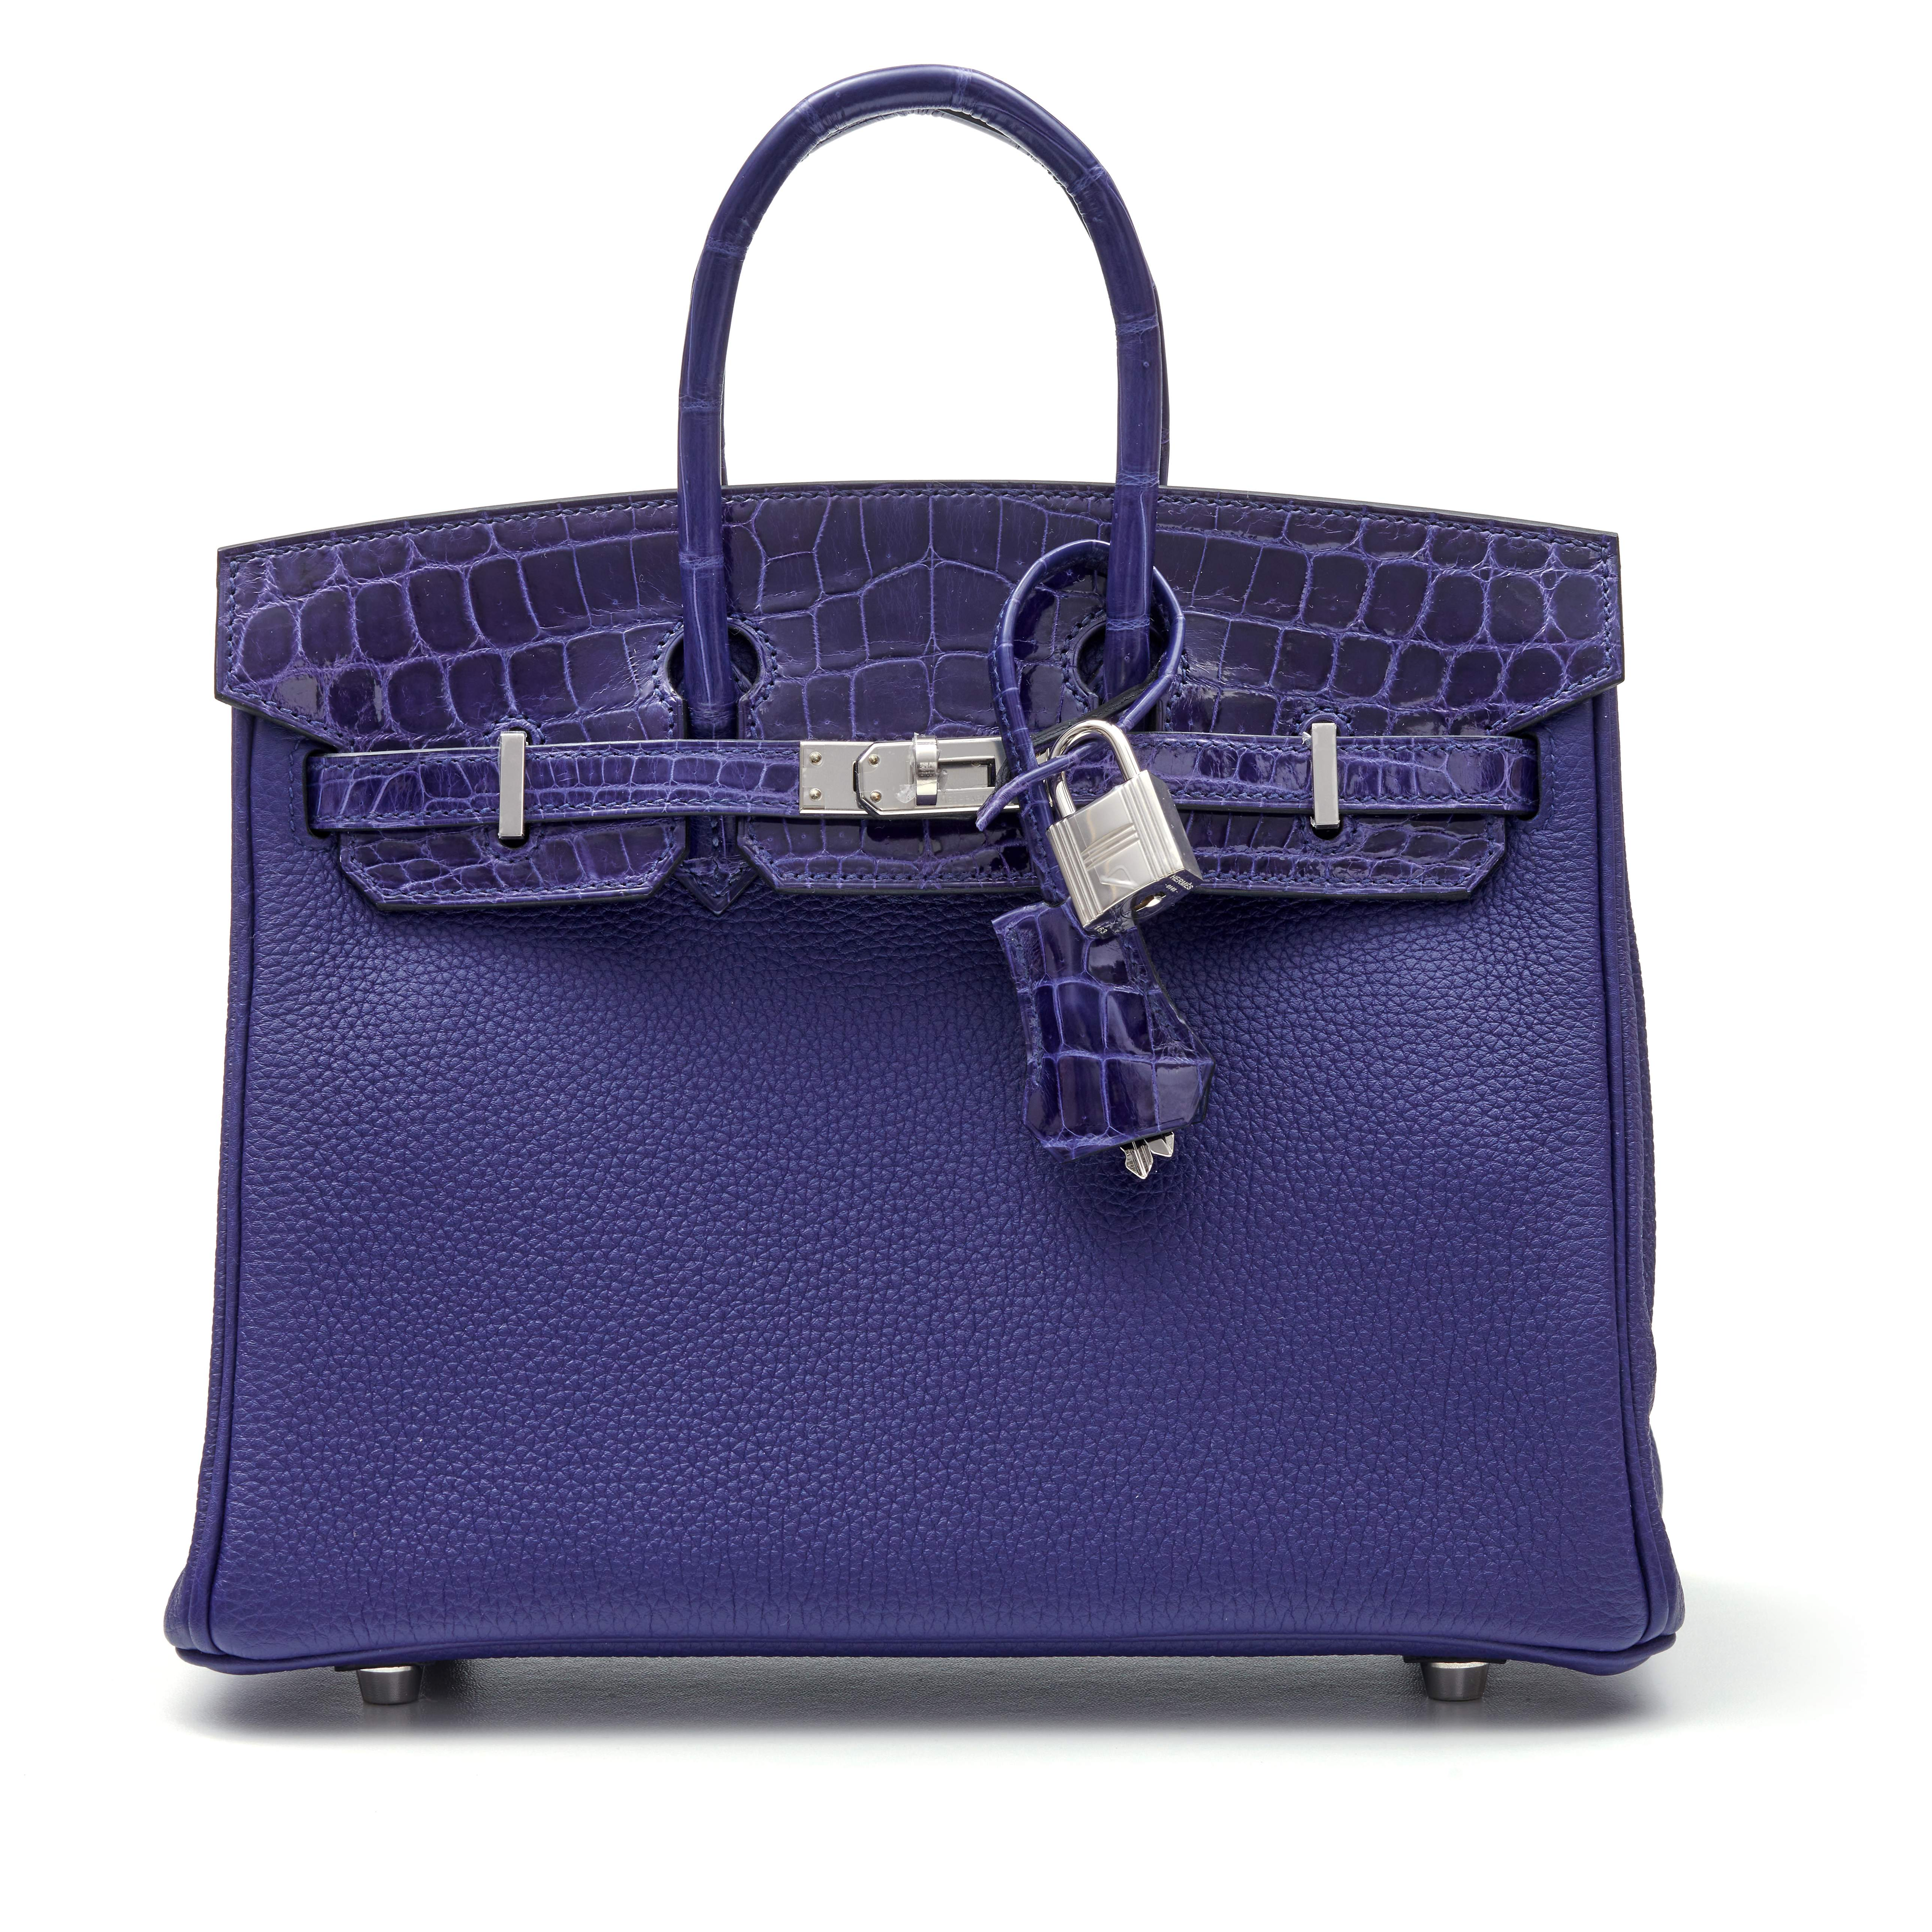 View full screen - View 1 of Lot 341. Bleu Encre Touch Birkin 25cm in Togo Leather and Shiny Niloticus Crocodile with Palladium Hardware, 2018.